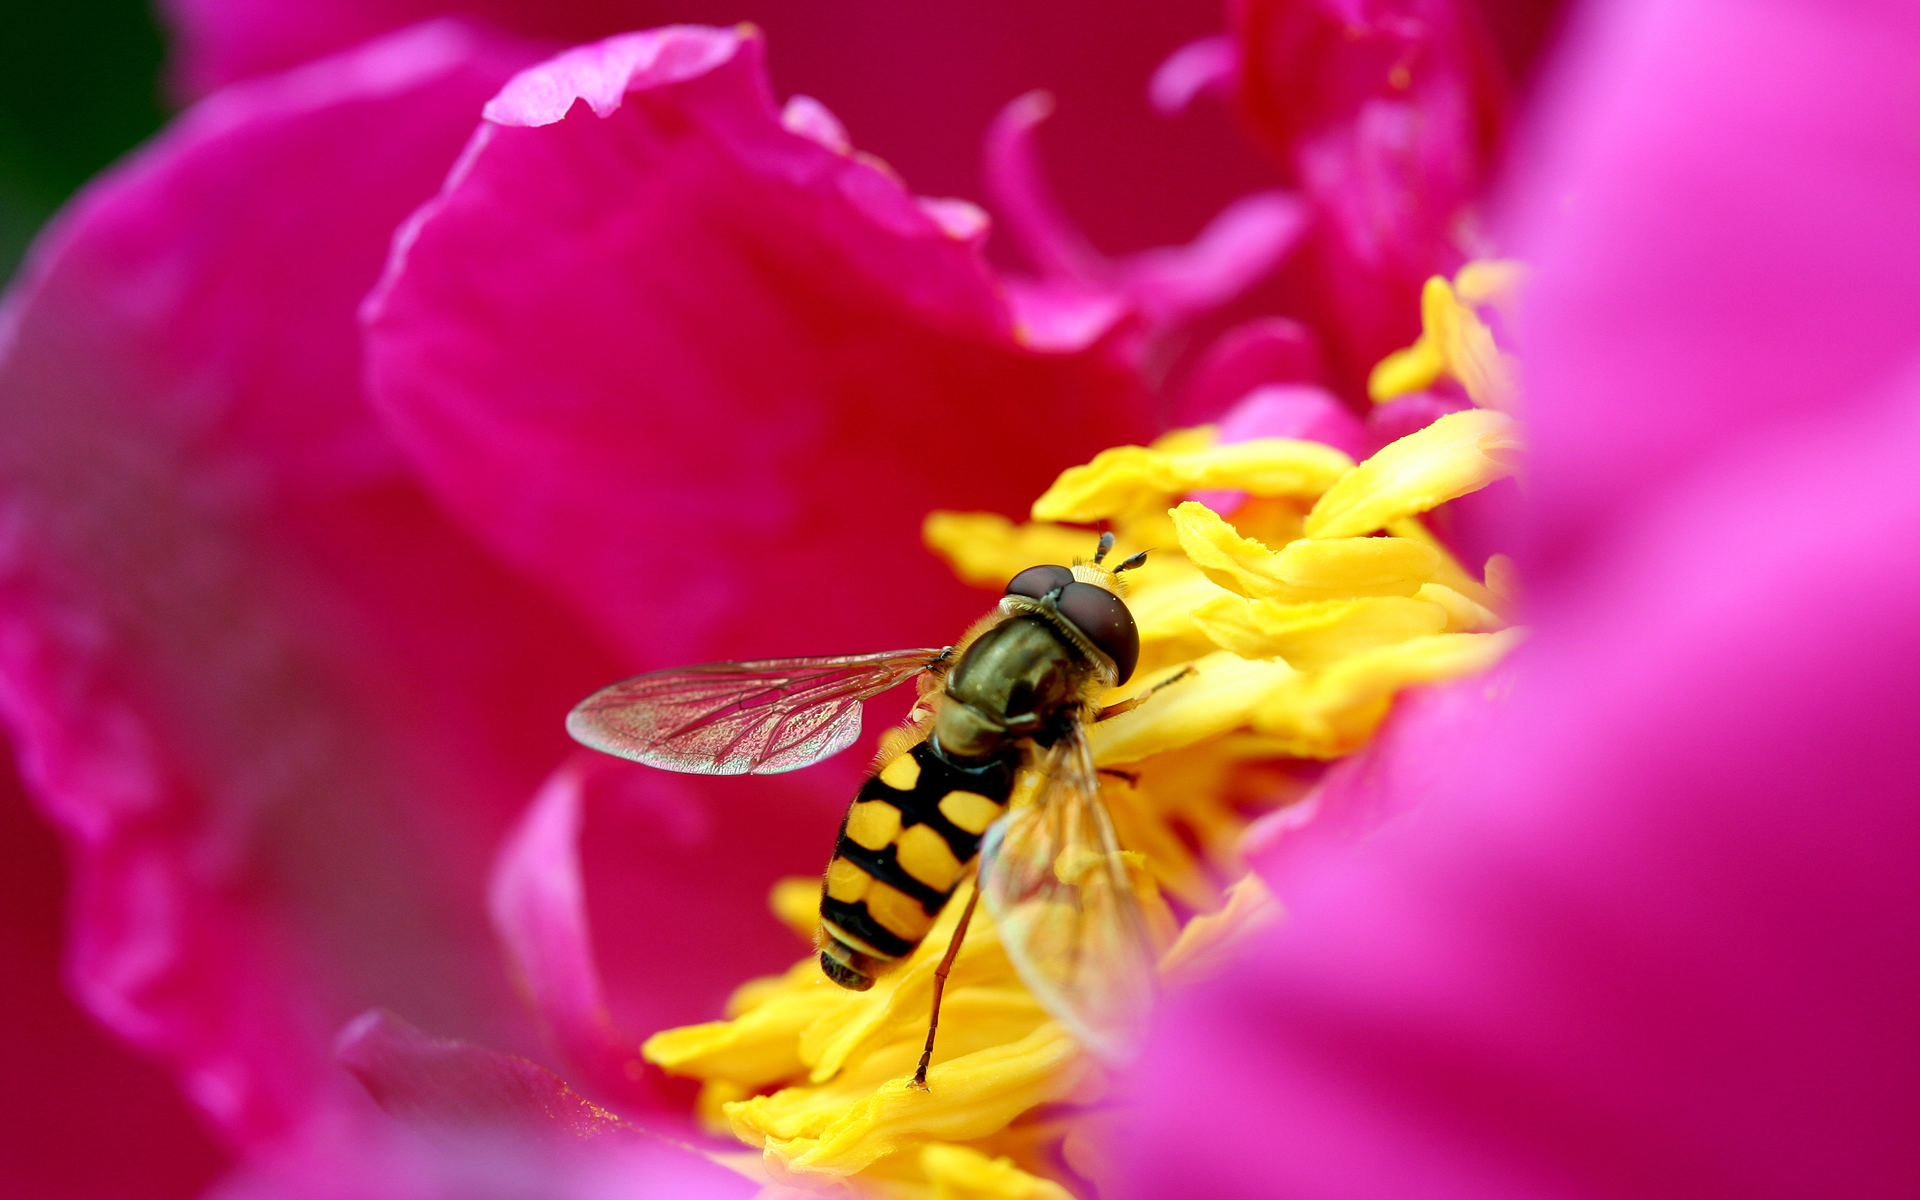 Bee & Flower in HD 106 Kb